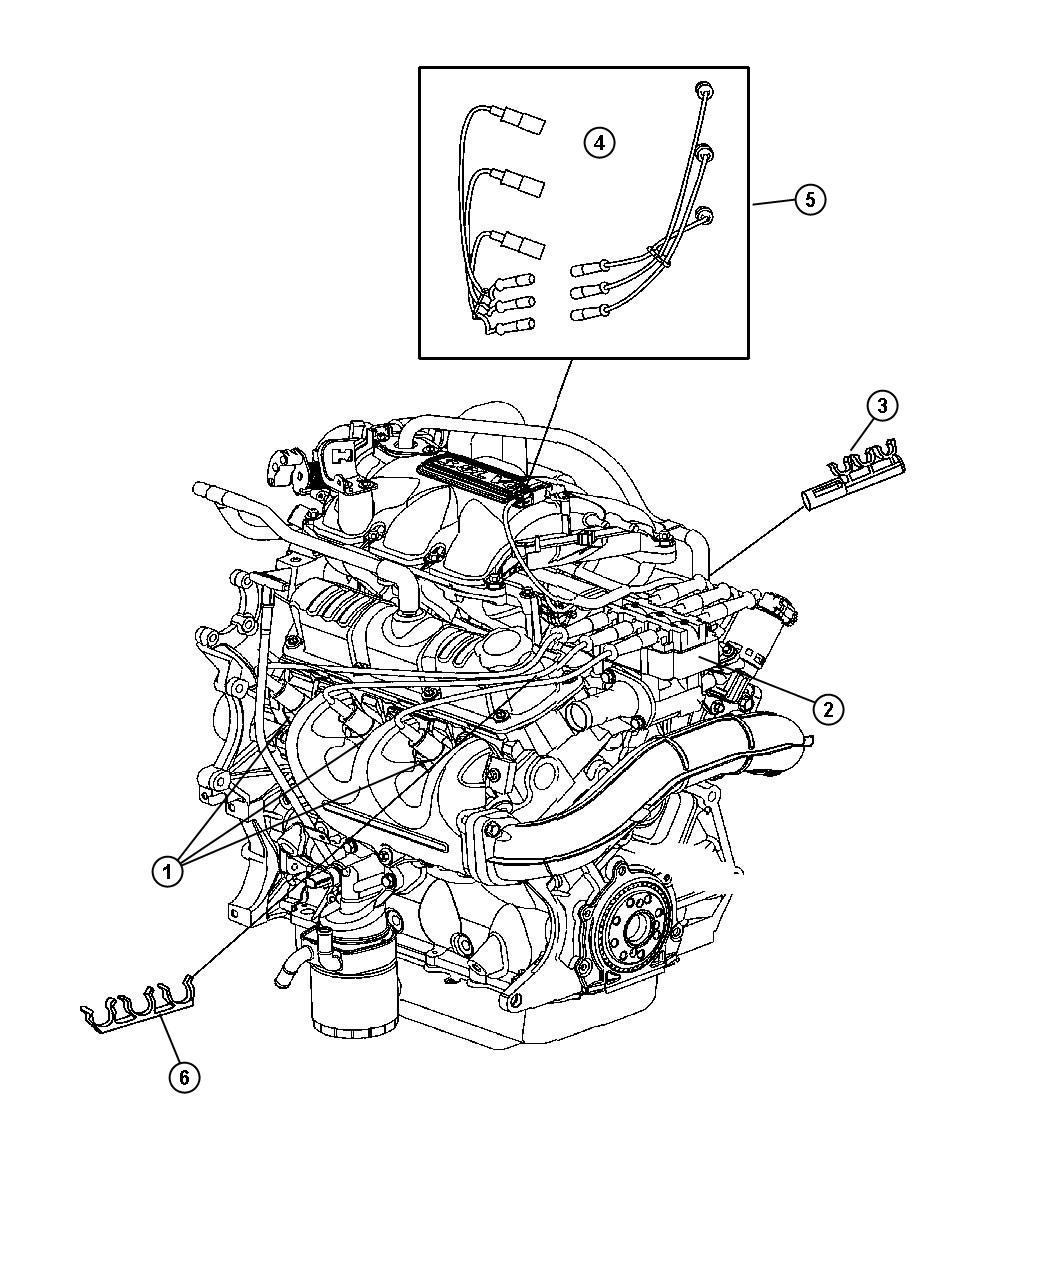 Service manual [Change Plugs In A 2005 Chrysler Pacifica